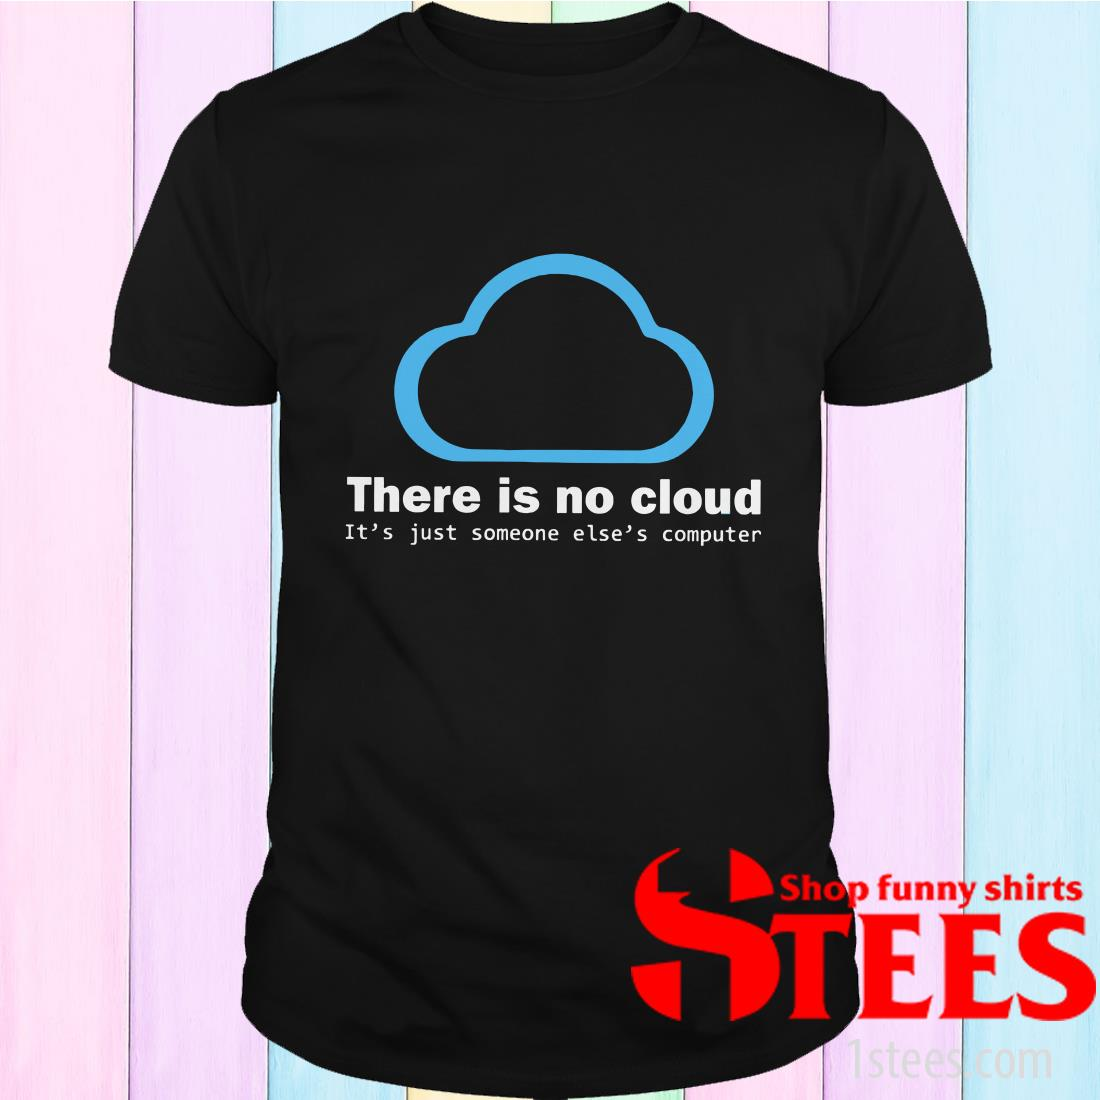 There Is No Cloud Tech Humor T-Shirt